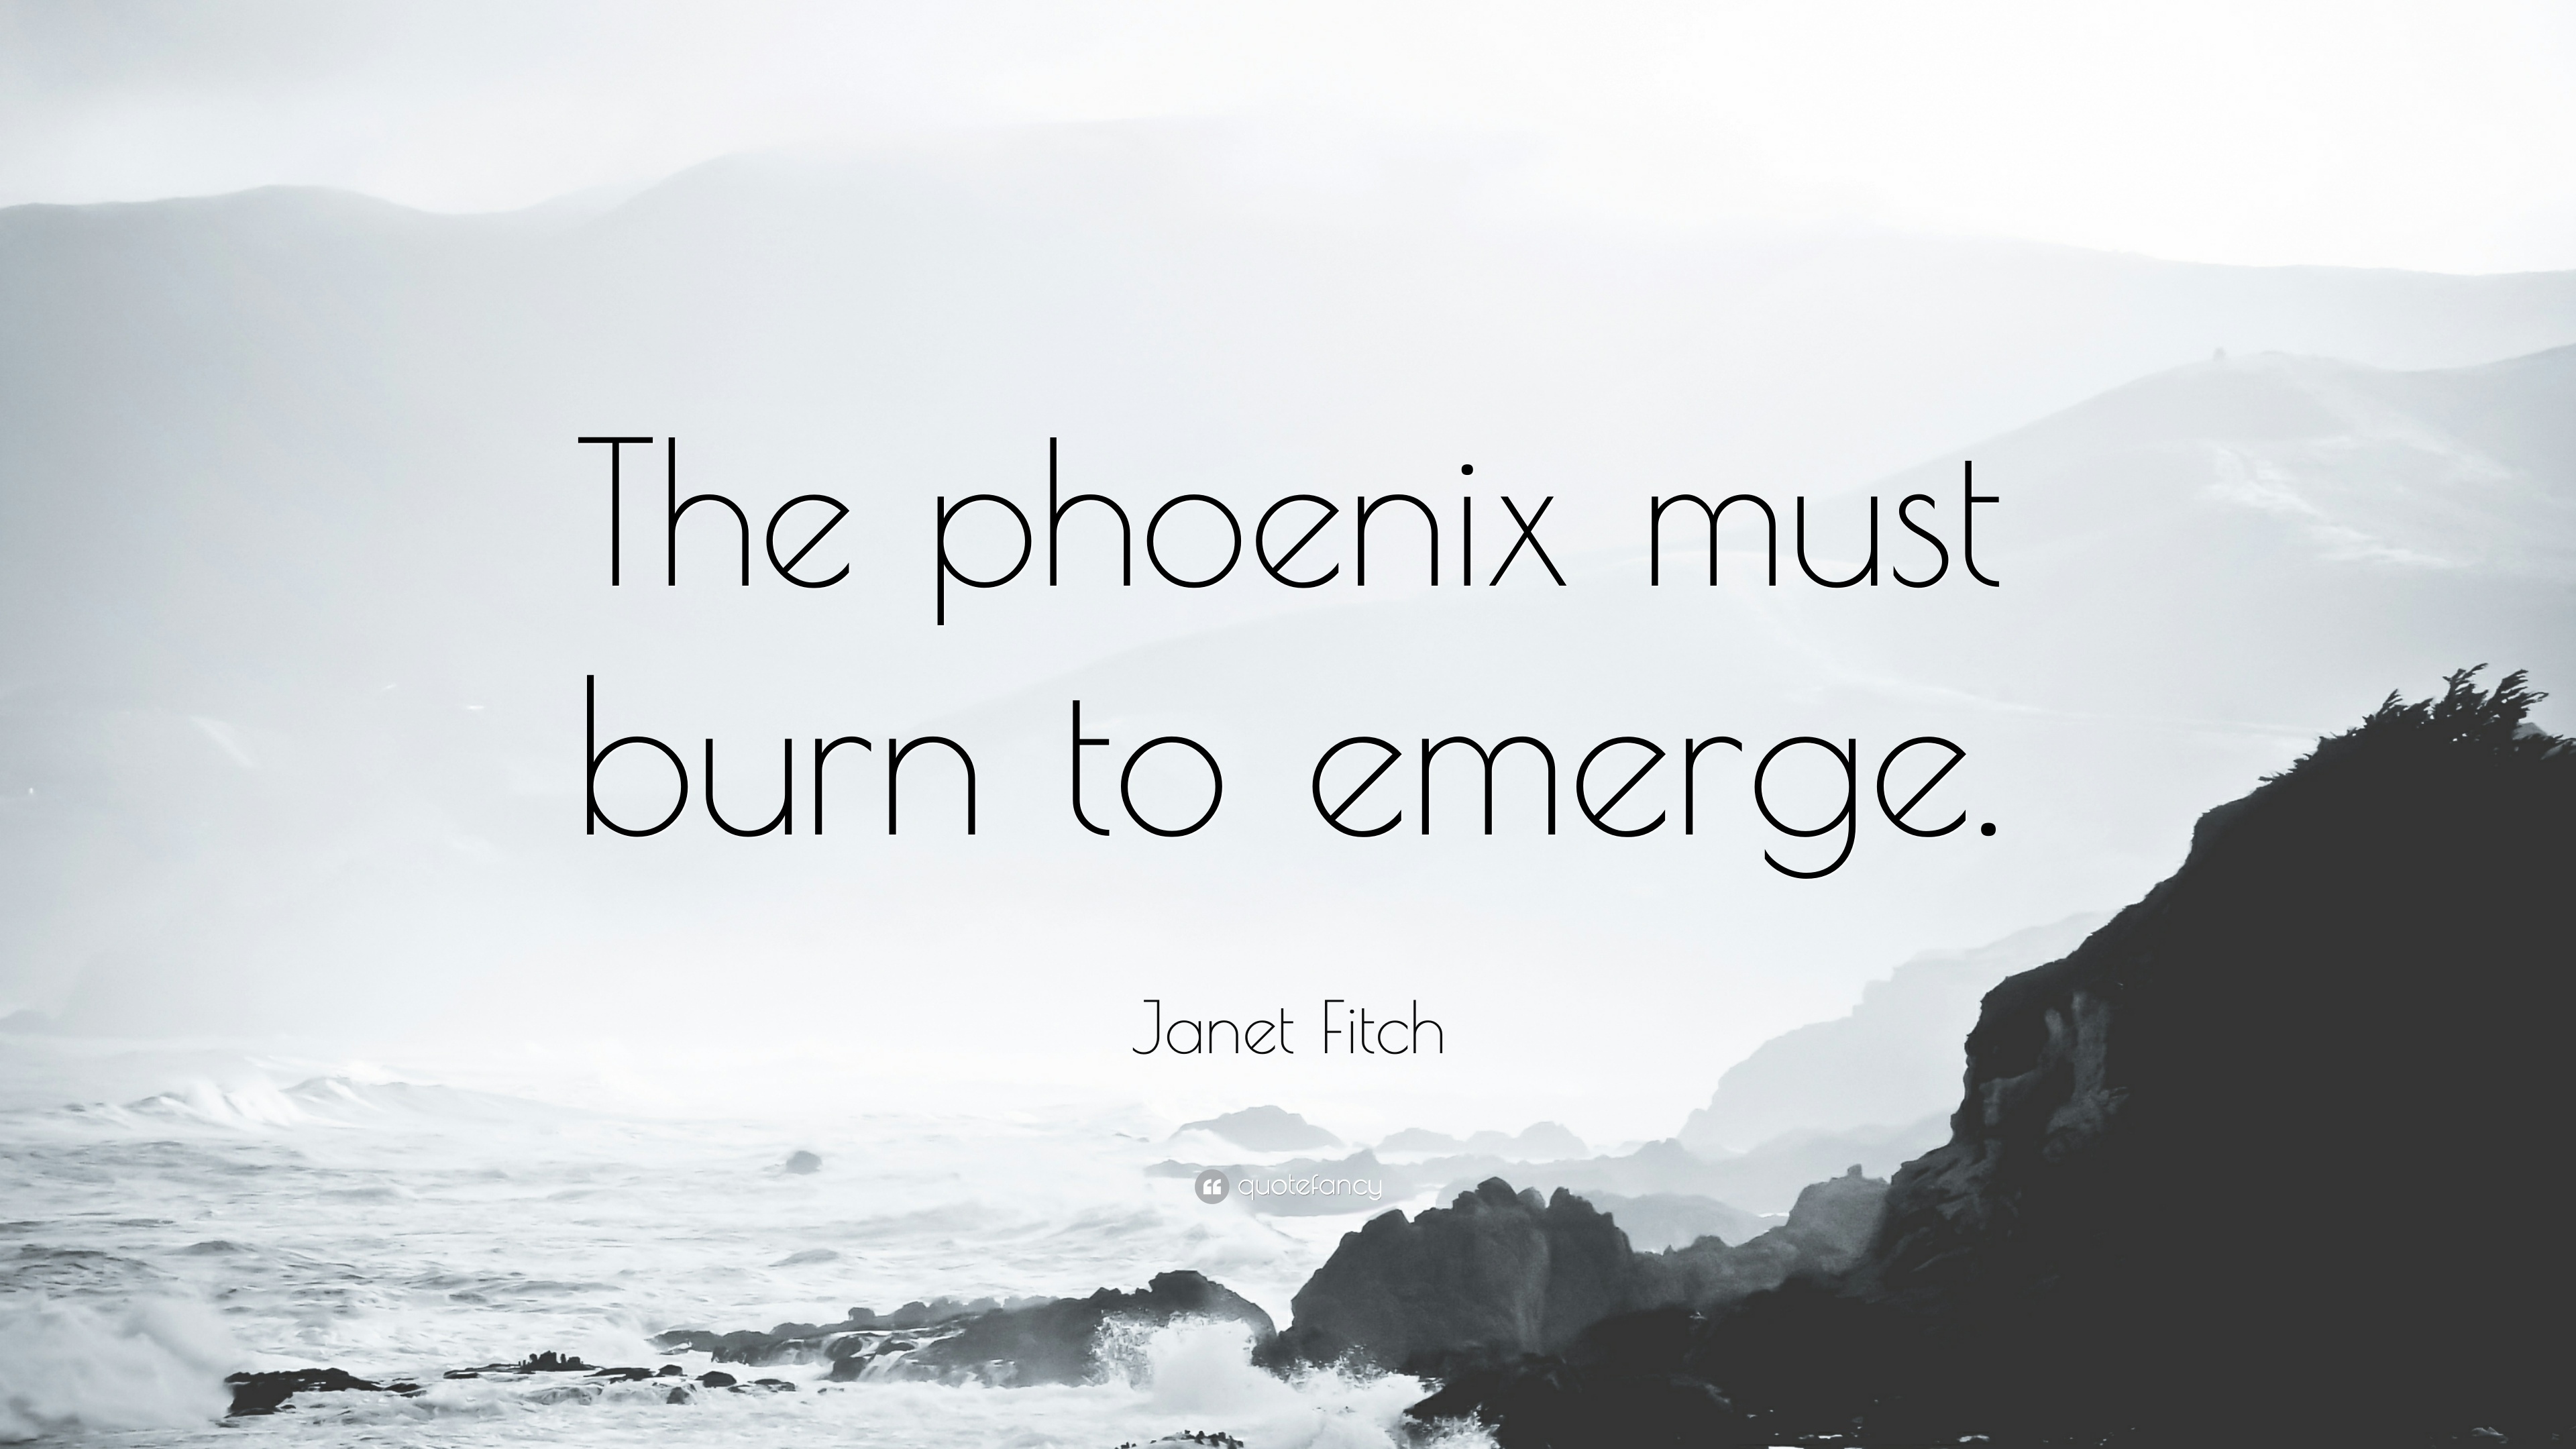 Janet Fitch Quote: The phoenix must burn to emerge. (12